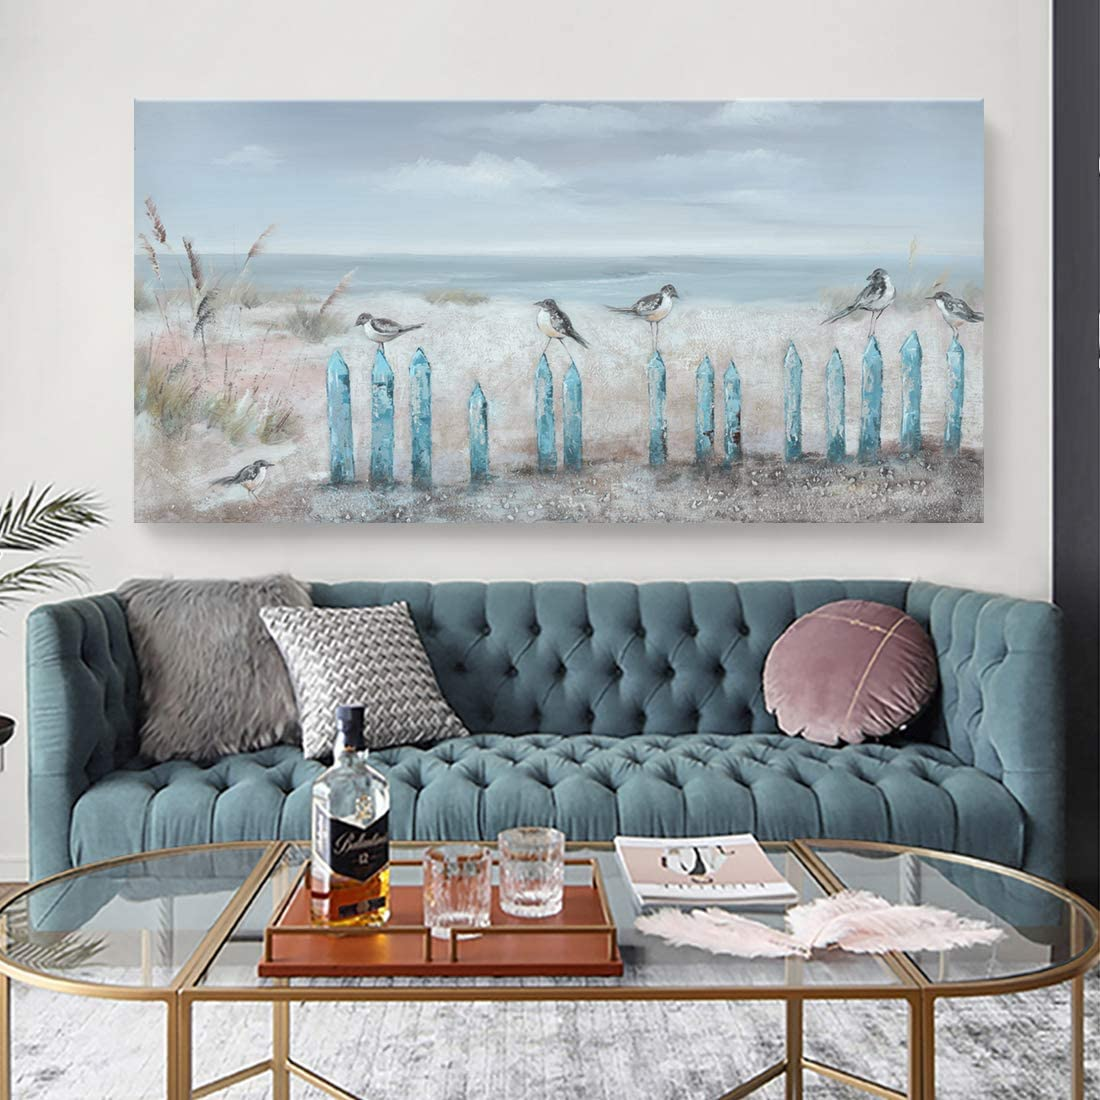 Amazon.com: Big Wall Art for Living Room Extra Large Hand-painted Beach Oil Painting Ocean Sea Bird Seagull Canvas Artwork Framed Seascape Coastal Picture for Office Bedroom Decor 60x30inch: Paintings